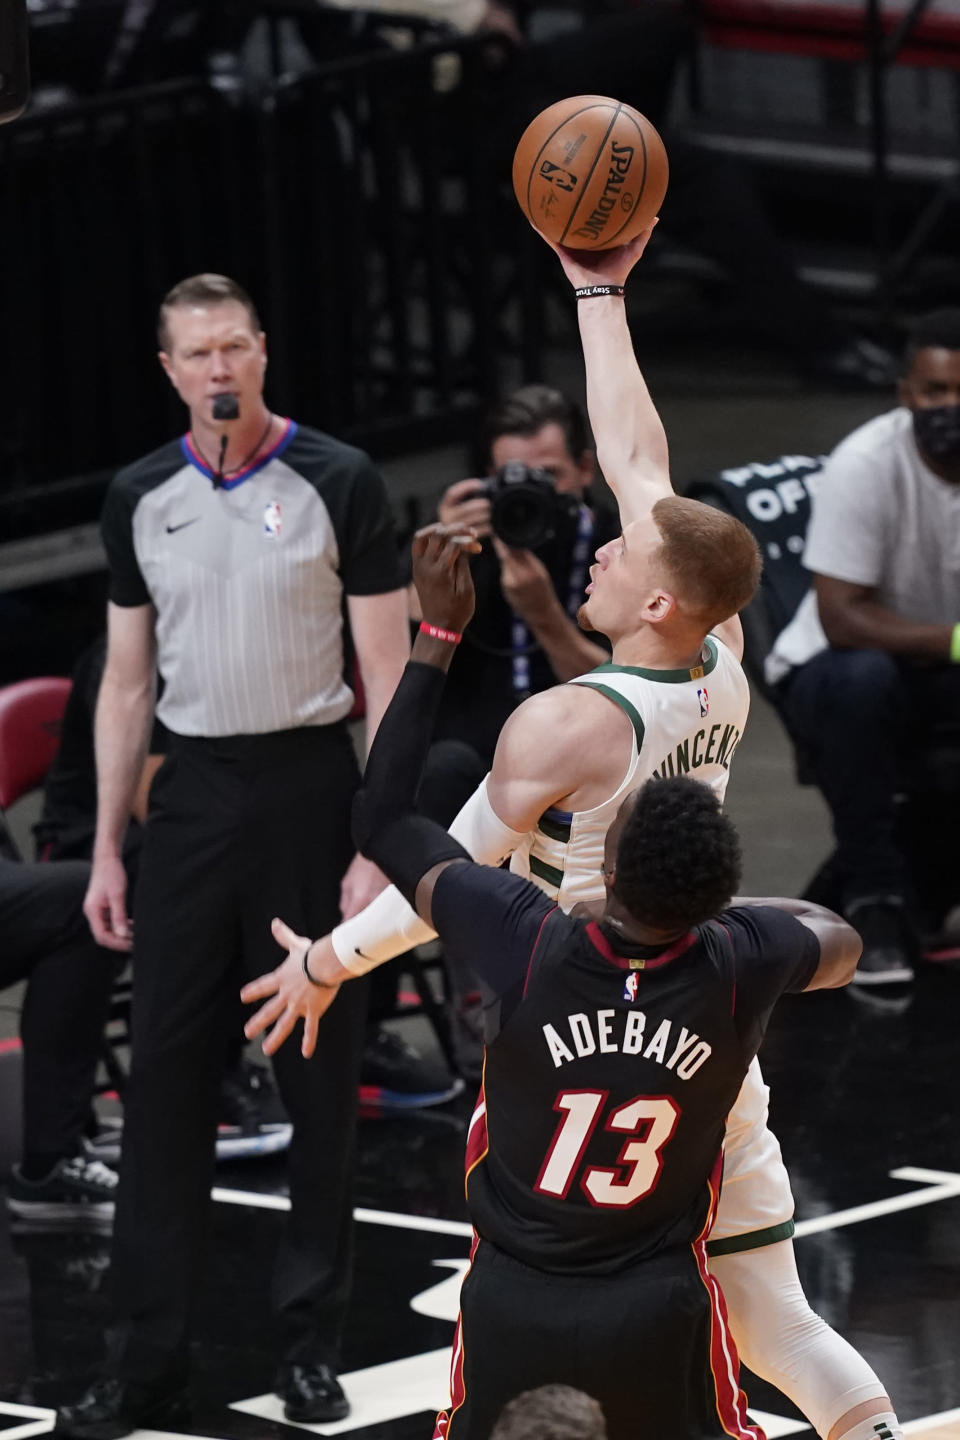 Milwaukee Bucks guard Donte DiVincenzo drives to the basket over Miami Heat center Bam Adebayo (13) during the first half of Game 3 of an NBA basketball first-round playoff series Thursday, May 27, 2021, in Miami. (AP Photo/Marta Lavandier)